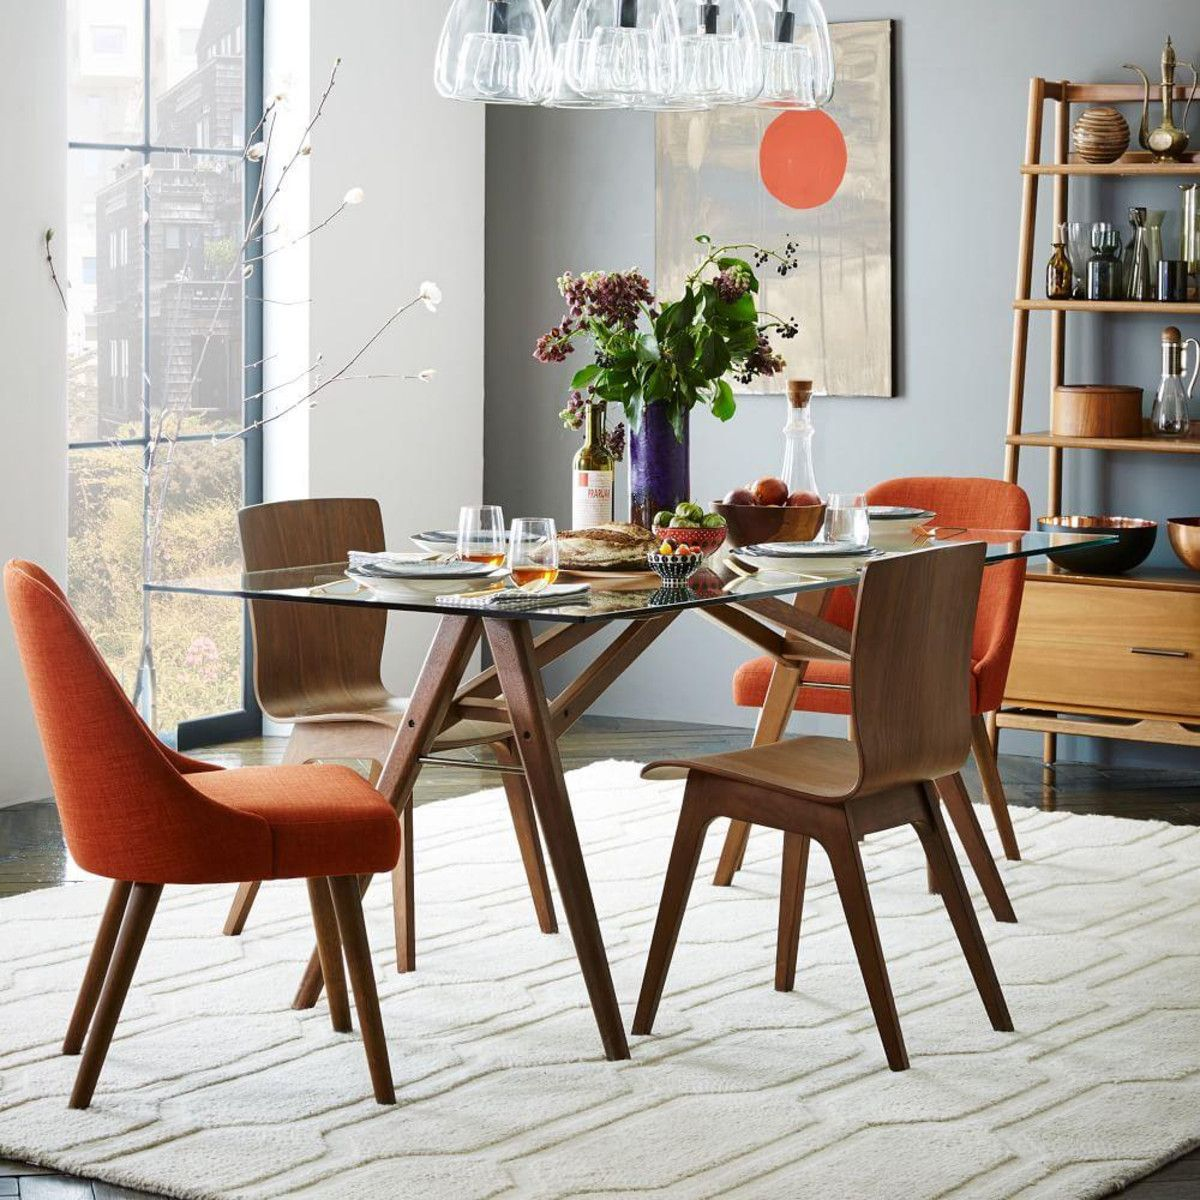 dining table glass dining room table west elm 77 Choosing The Right And Fitting Dining Room Table id=72762